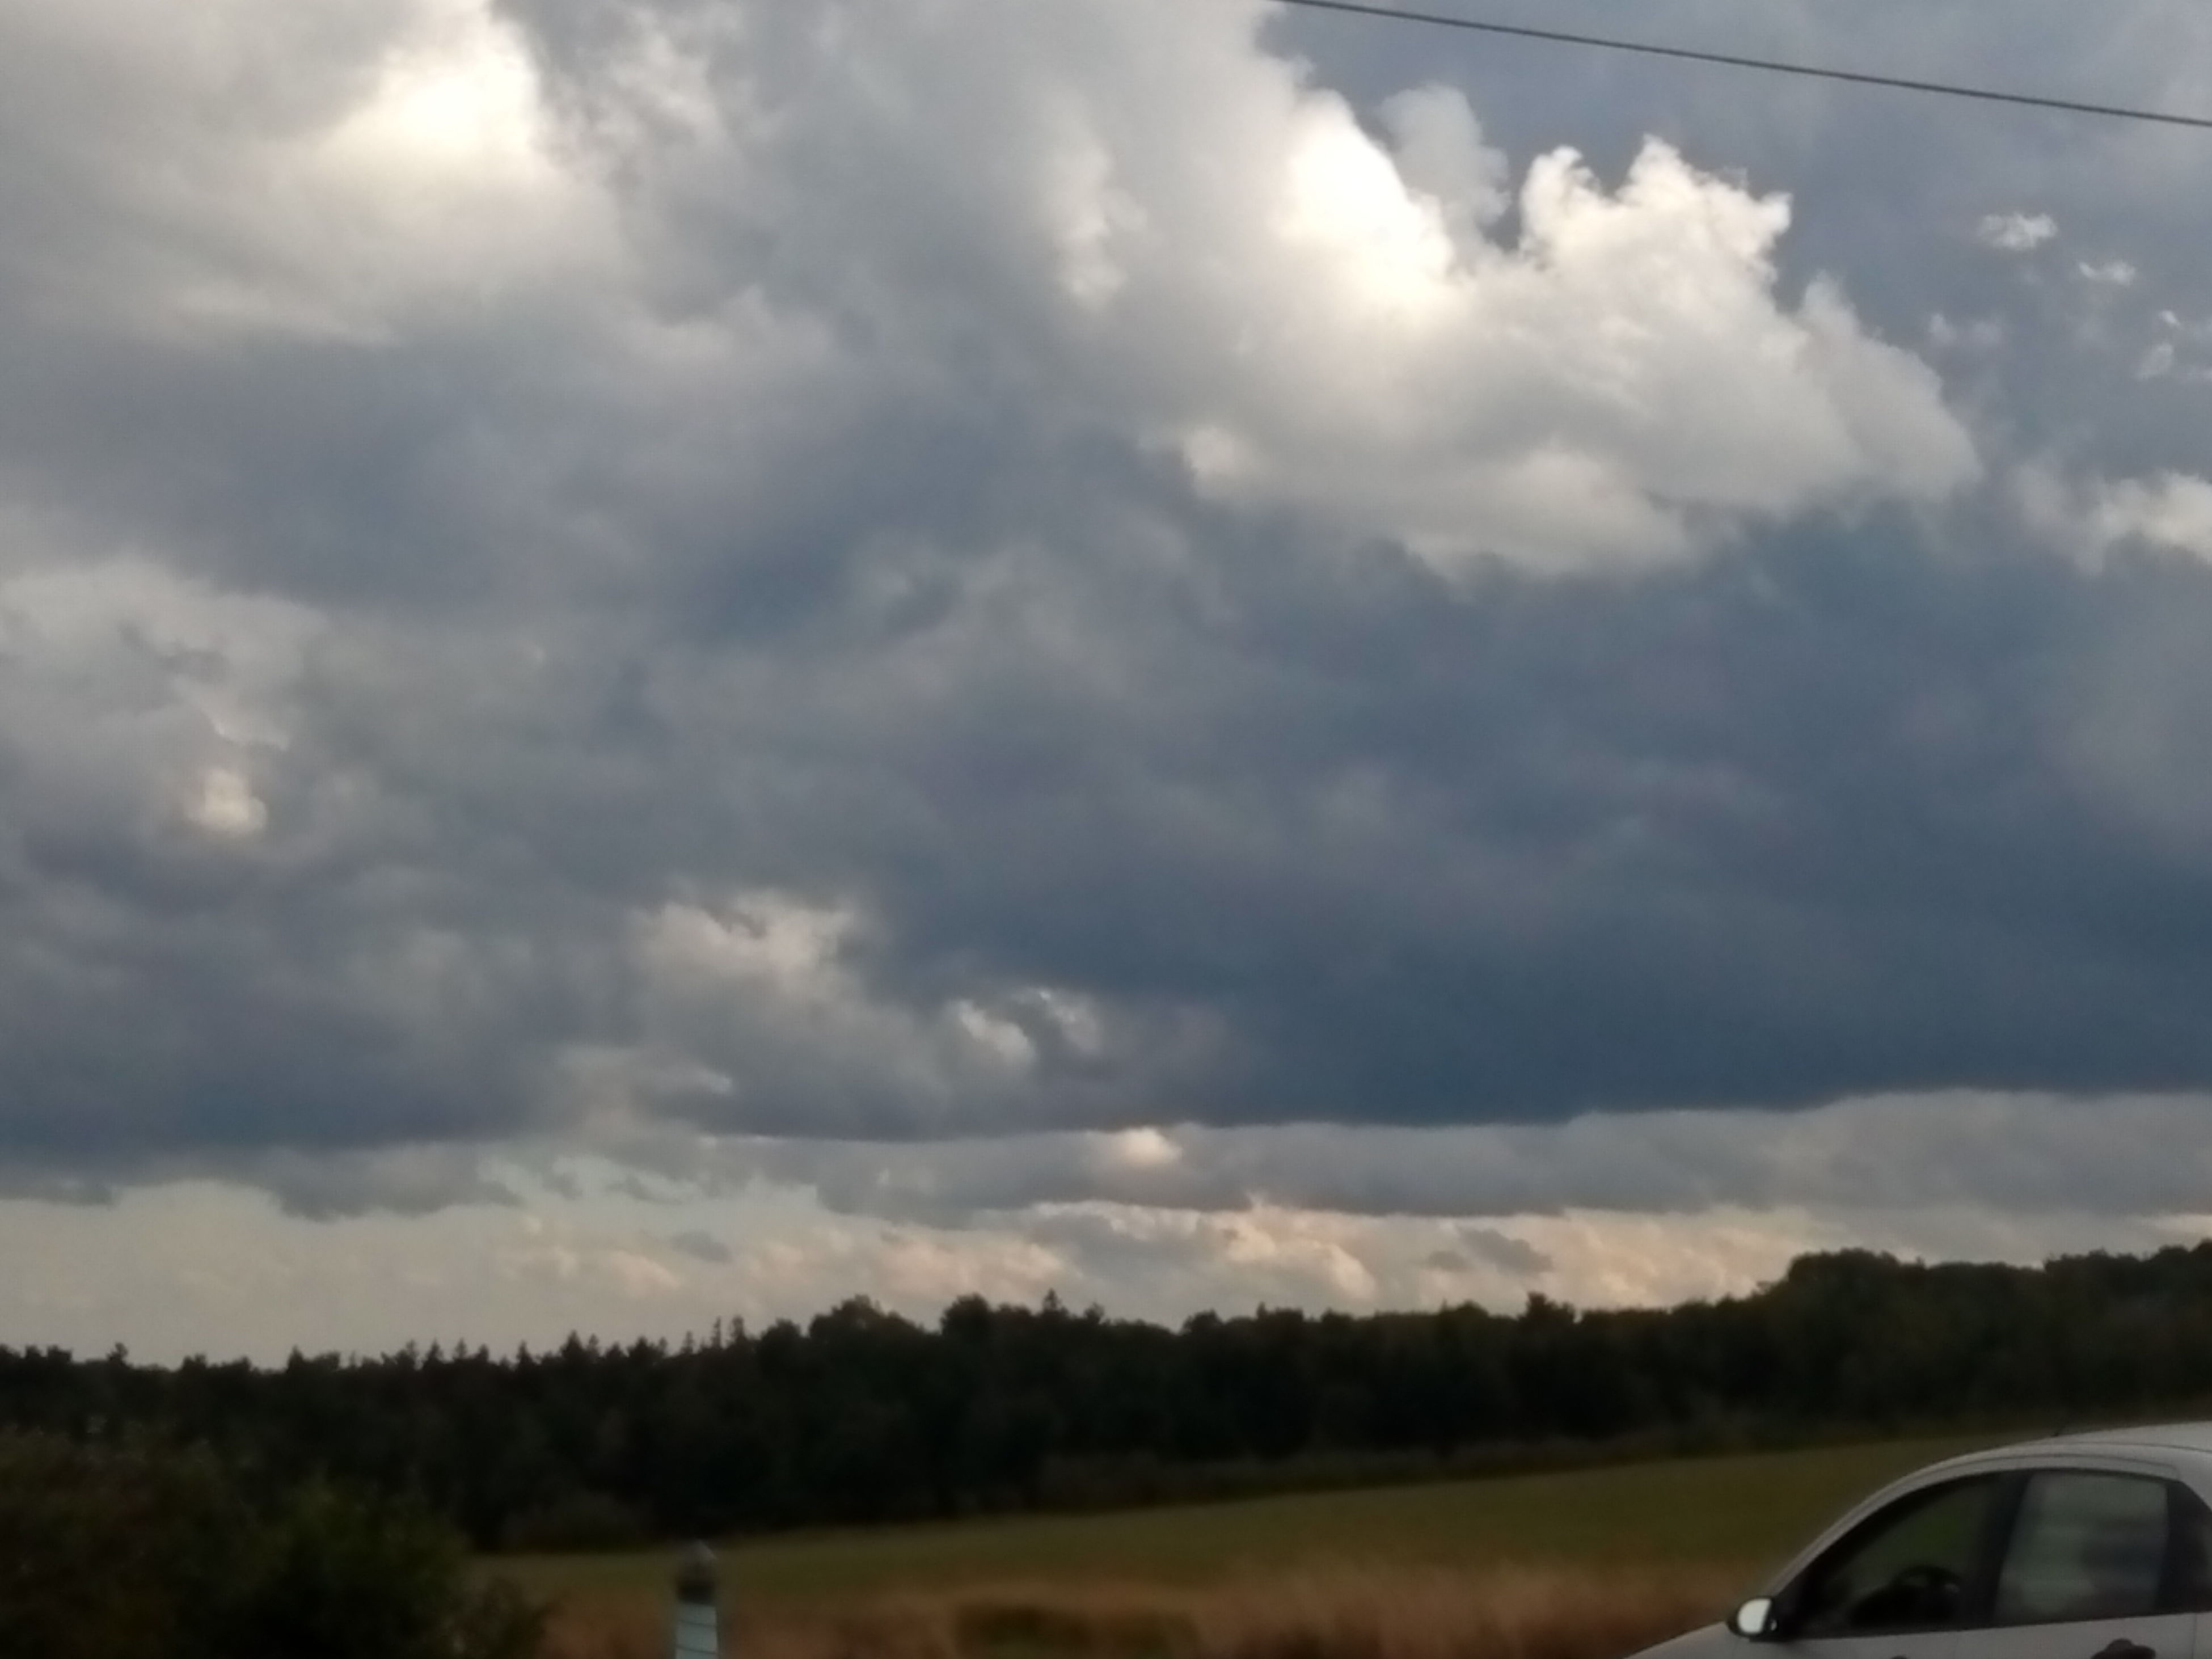 transportation, road, cloud - sky, sky, car, tranquil scene, cloudscape, the way forward, cloud, mode of transport, tranquility, cloudy, scenics, nature, day, solitude, non-urban scene, outdoors, beauty in nature, atmospheric mood, countryside, majestic, cumulus cloud, storm cloud, country road, ominous